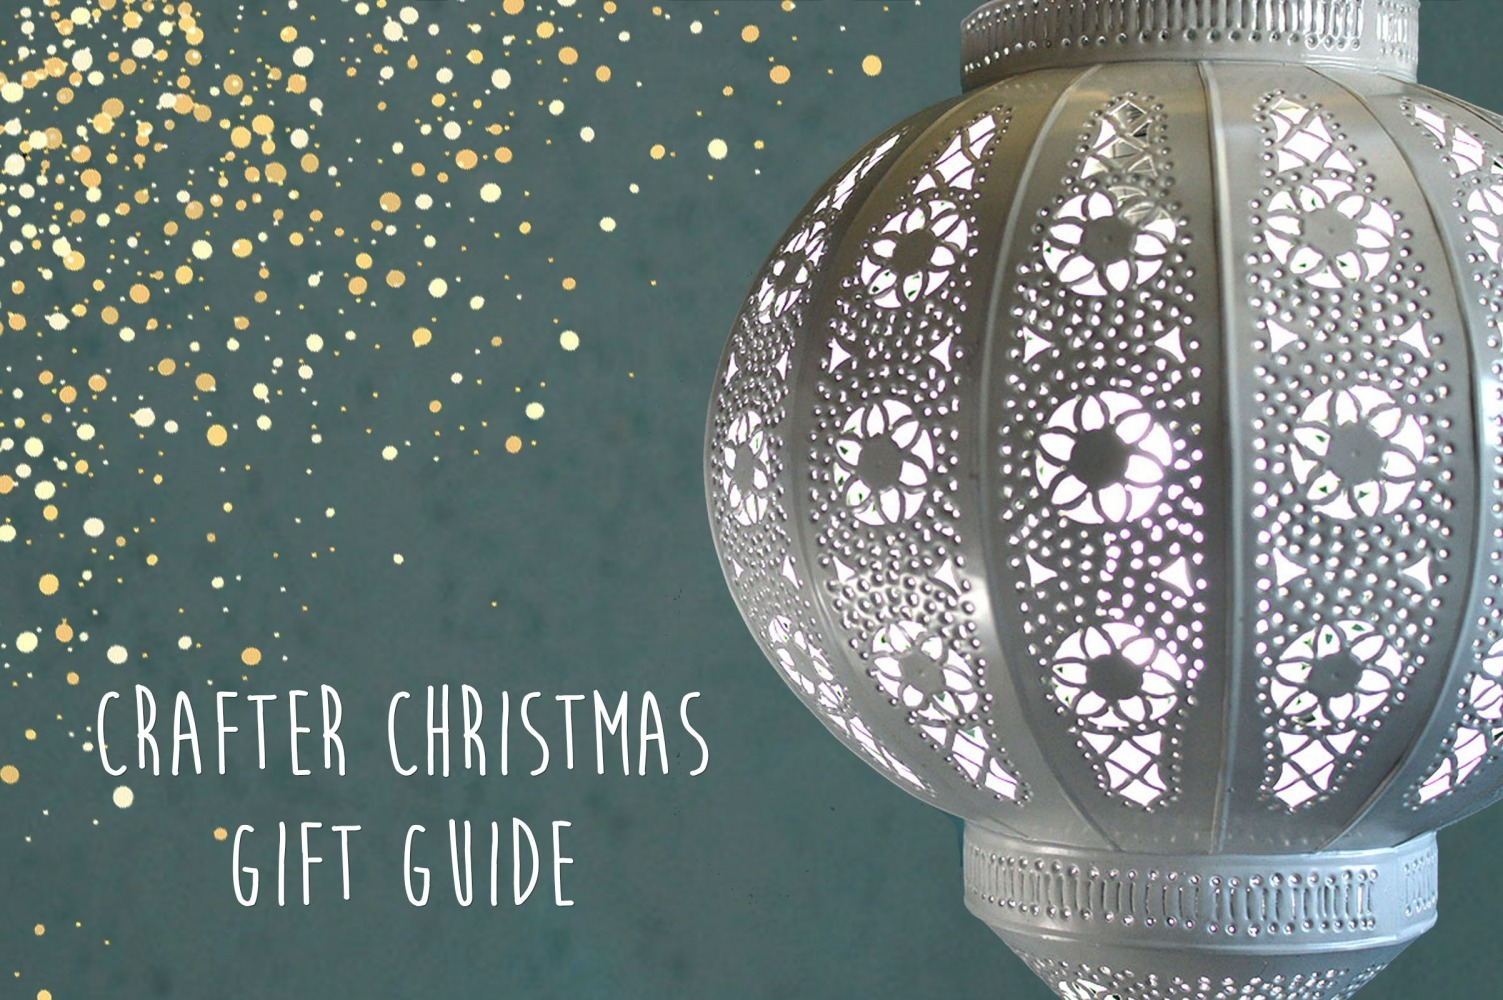 Crafter Christmas Gift Guide